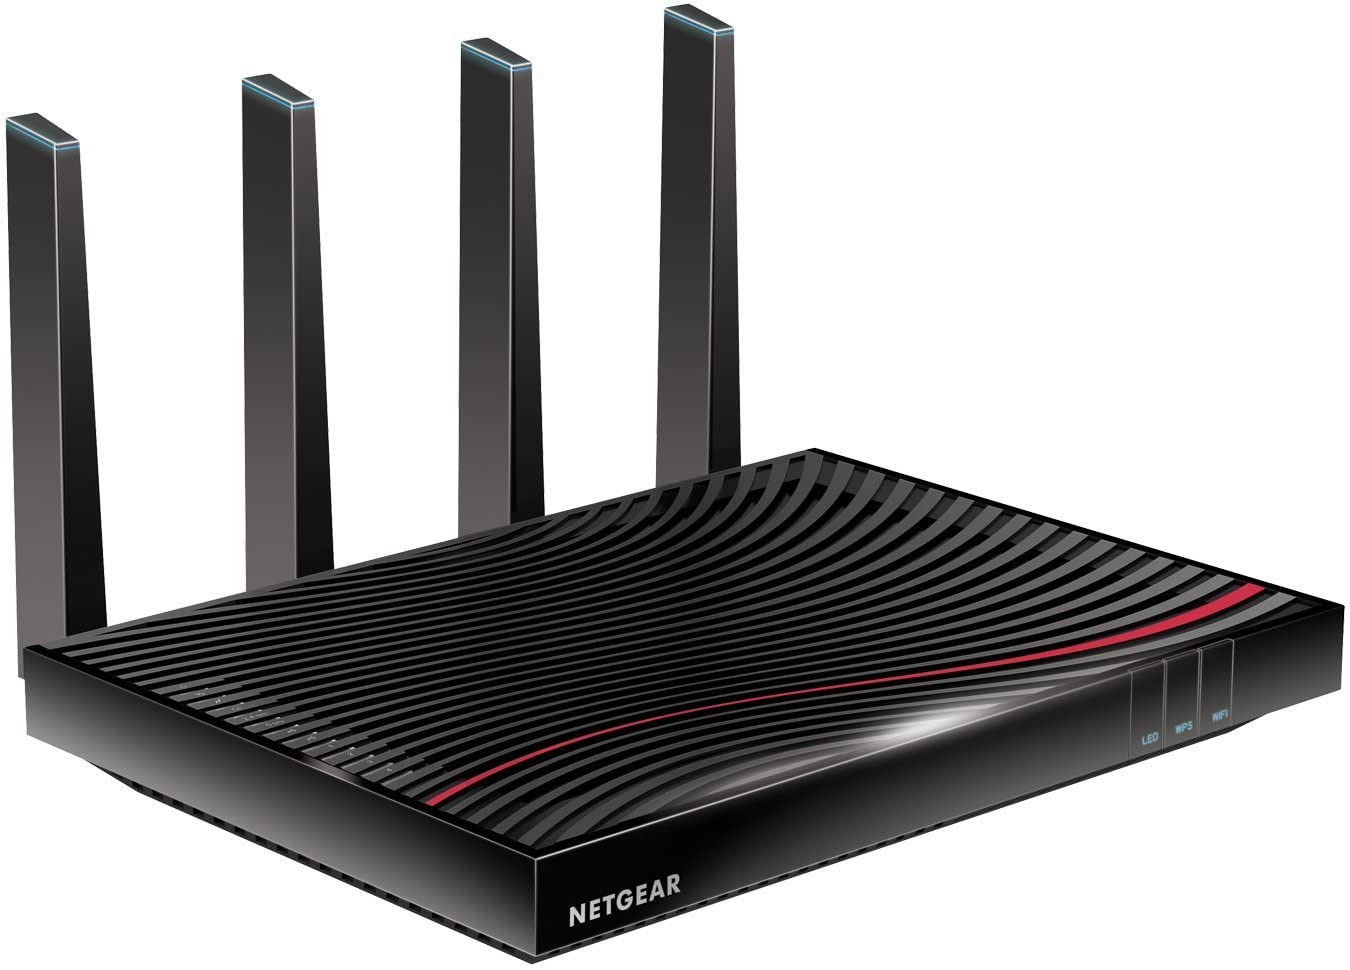 NETGEAR Nighthawk Cable Modem WiFi Router Combo (C7800) - Compatible with Cable Providers Including Xfinity by Comcast, Cox, Spectrum   Cable Plans Up to 2 Gigabits   AC3200 WiFi Speed   DOCSIS 3.1